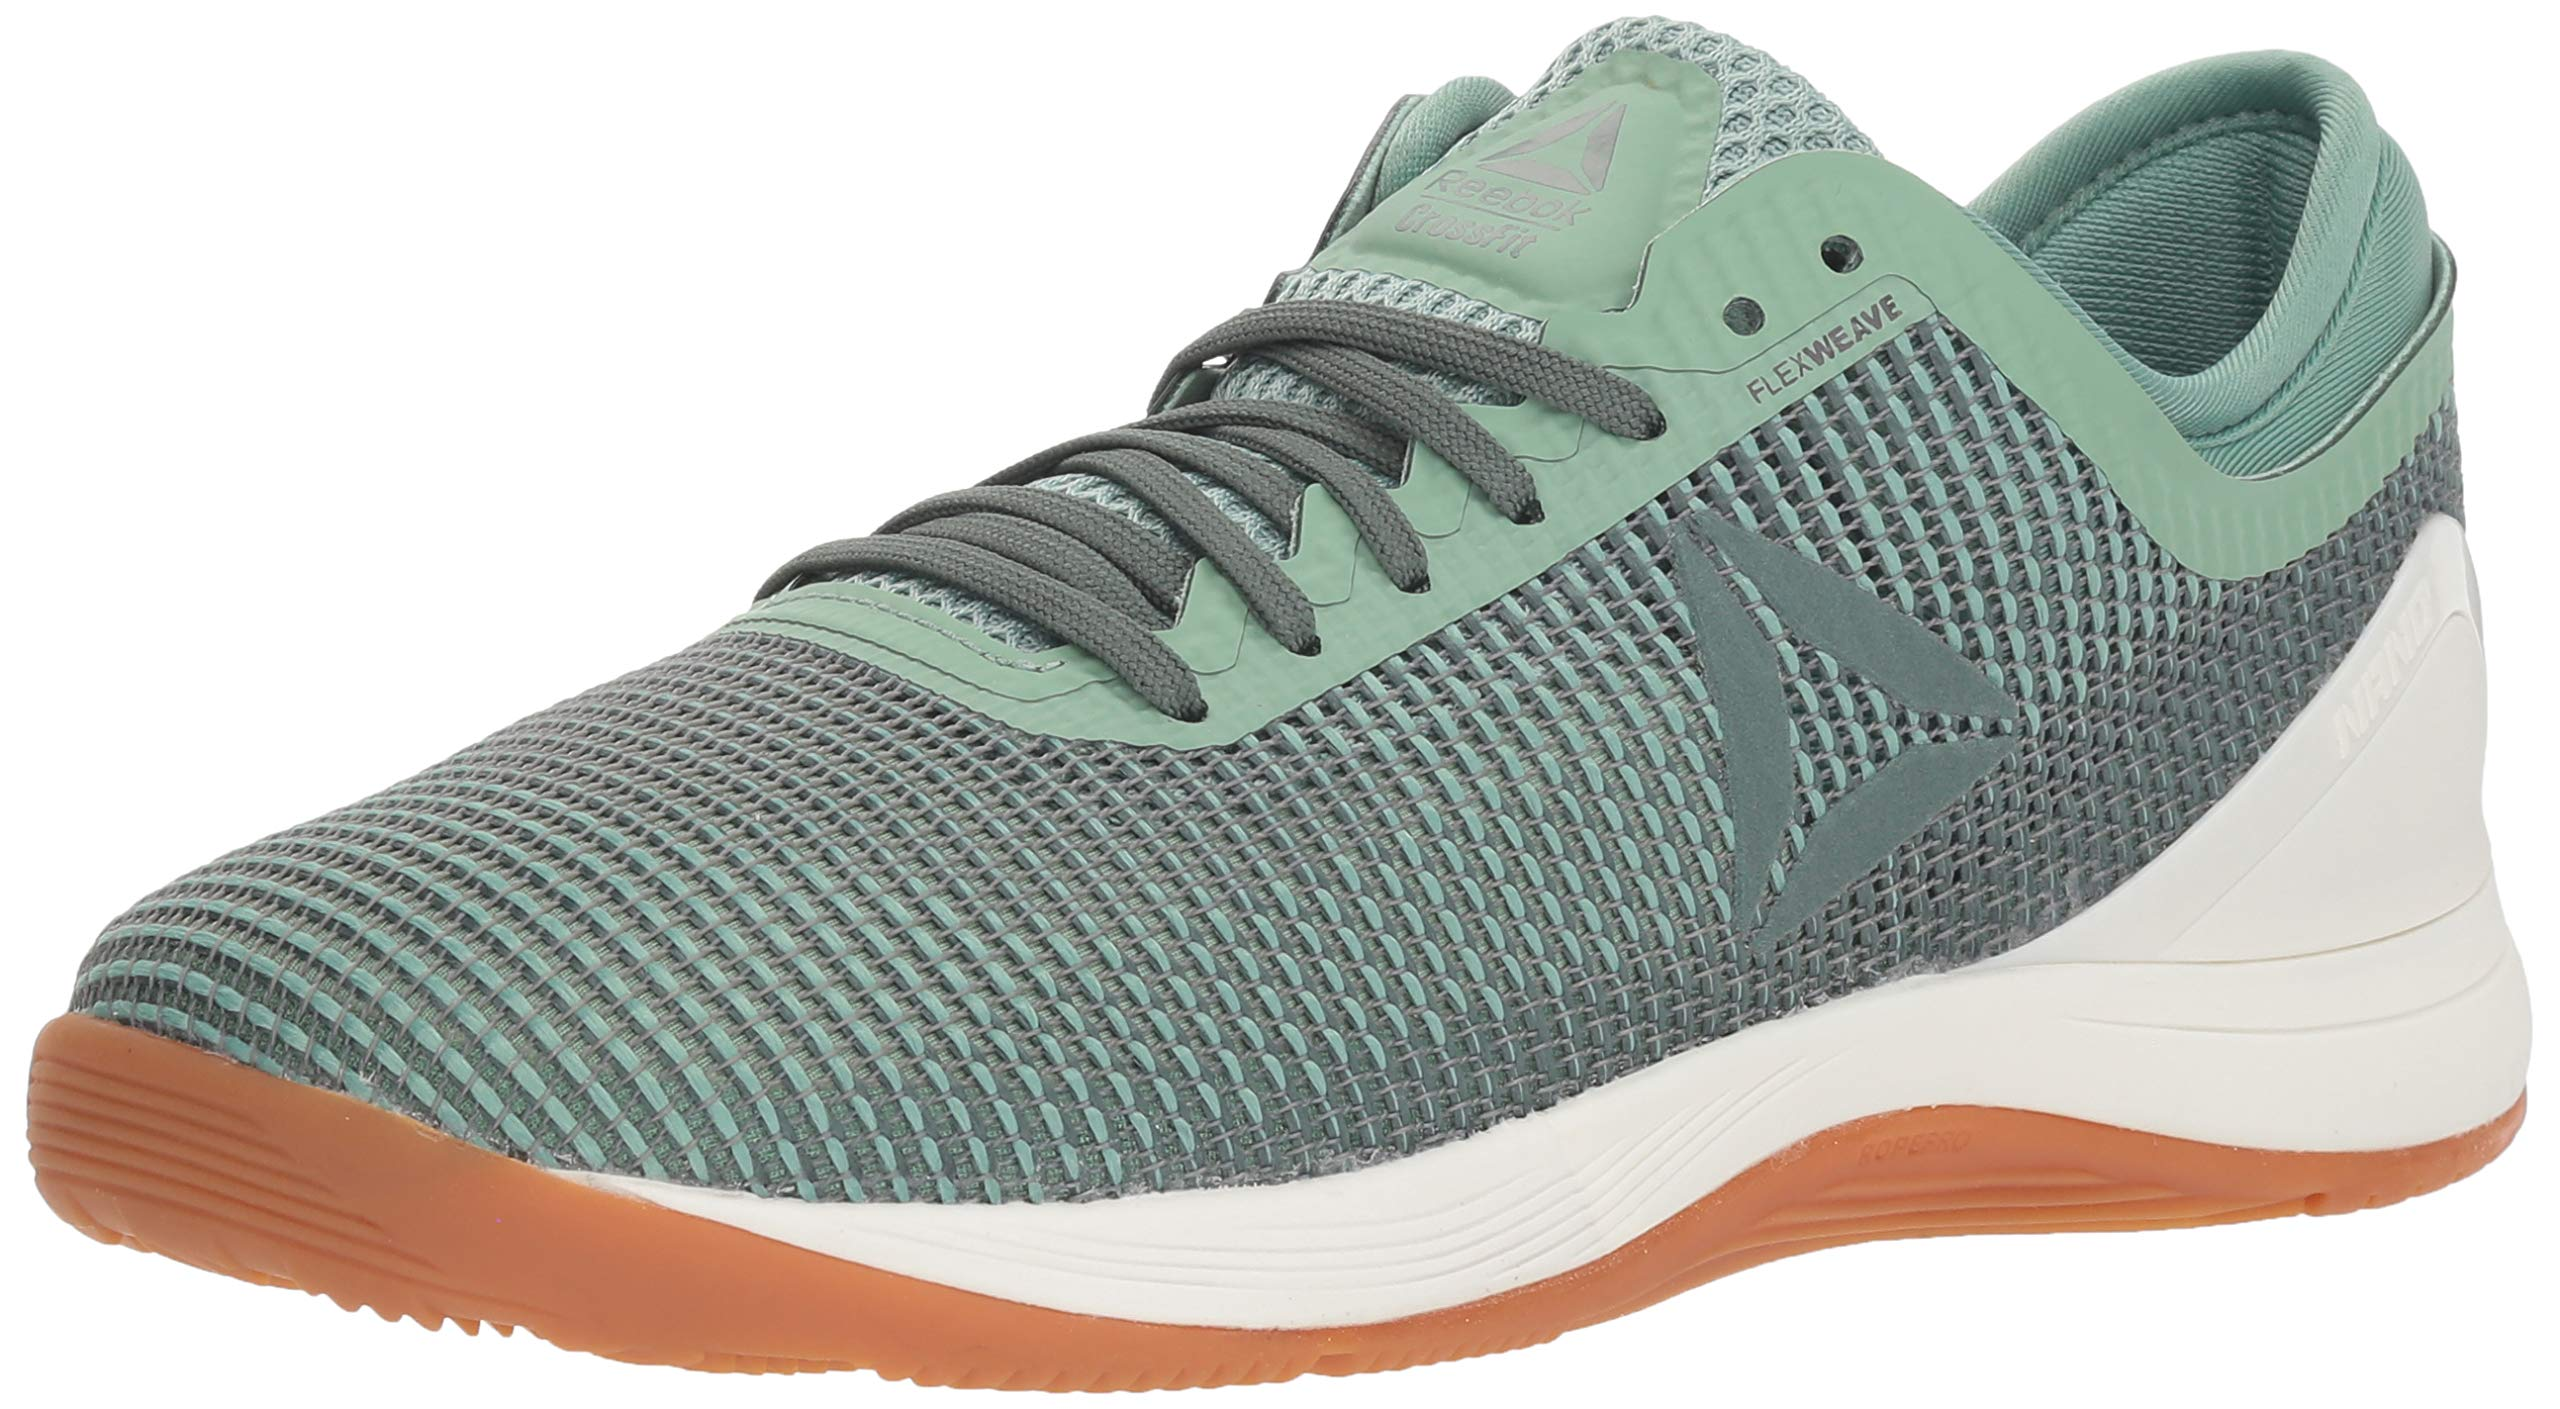 Reebok Women's CROSSFIT Nano 8.0 Flexweave Cross Trainer, industrial green/chalk grey, 5 M US by Reebok (Image #1)